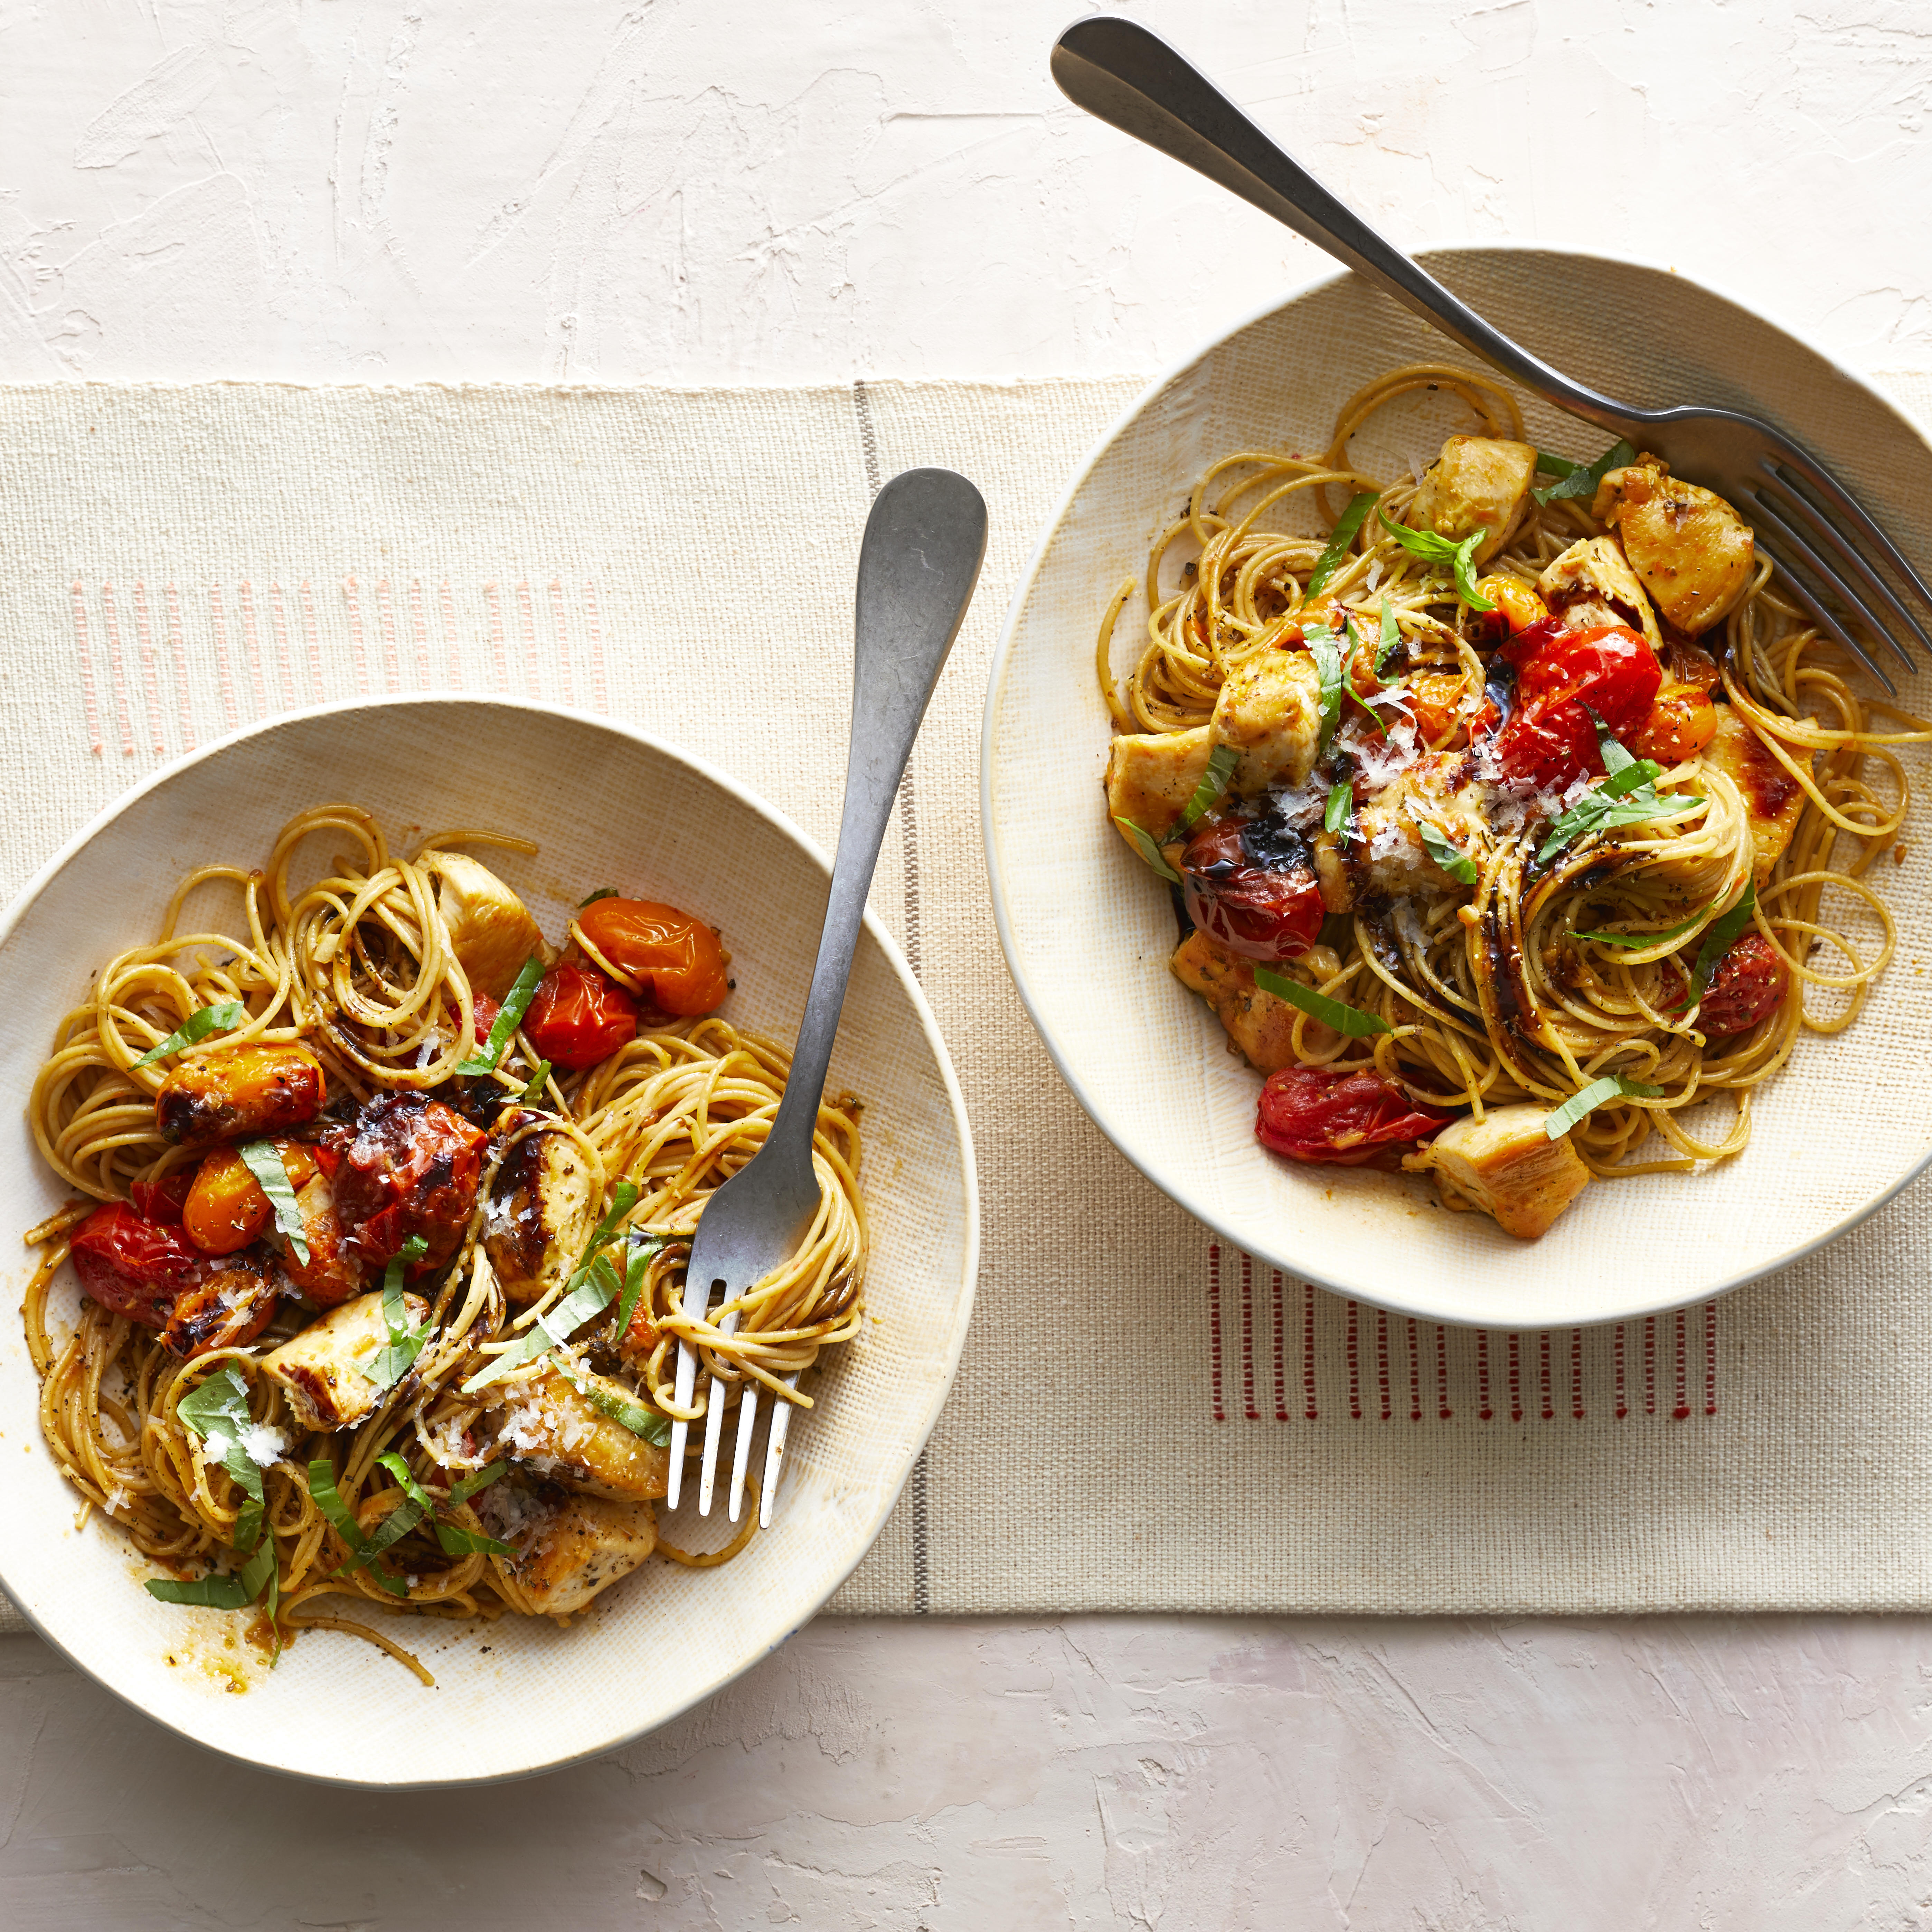 This healthy chicken pasta recipe is jazzed up with traditional bruschetta toppers, including cherry tomatoes, garlic and basil. Multicolored cherry tomatoes look pretty, but you can use all one color of tomato too. Either way, you've got an easy weeknight dinner that's ready in 25 minutes. We've called for spaghettini (thin spaghetti) in this recipe, but feel free to use your favorite shape of pasta. Source: EatingWell.com, April 2019